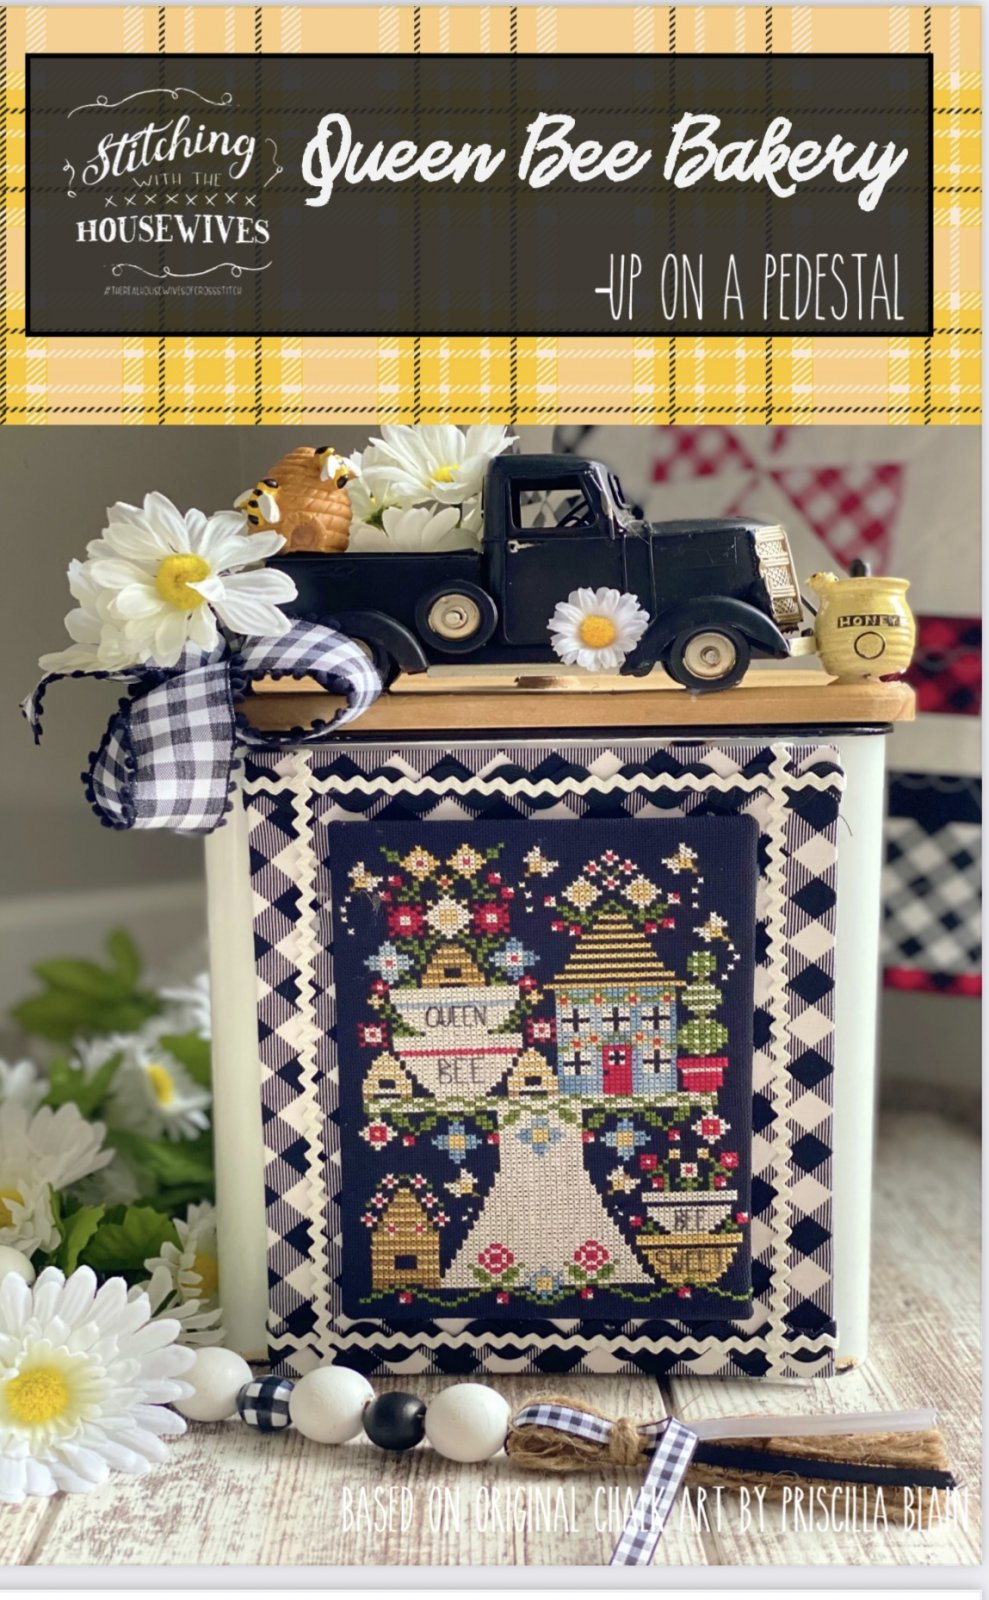 A Queen Bee bakery by Stitching with the Housewives - Counted Cross Stitch Pattern